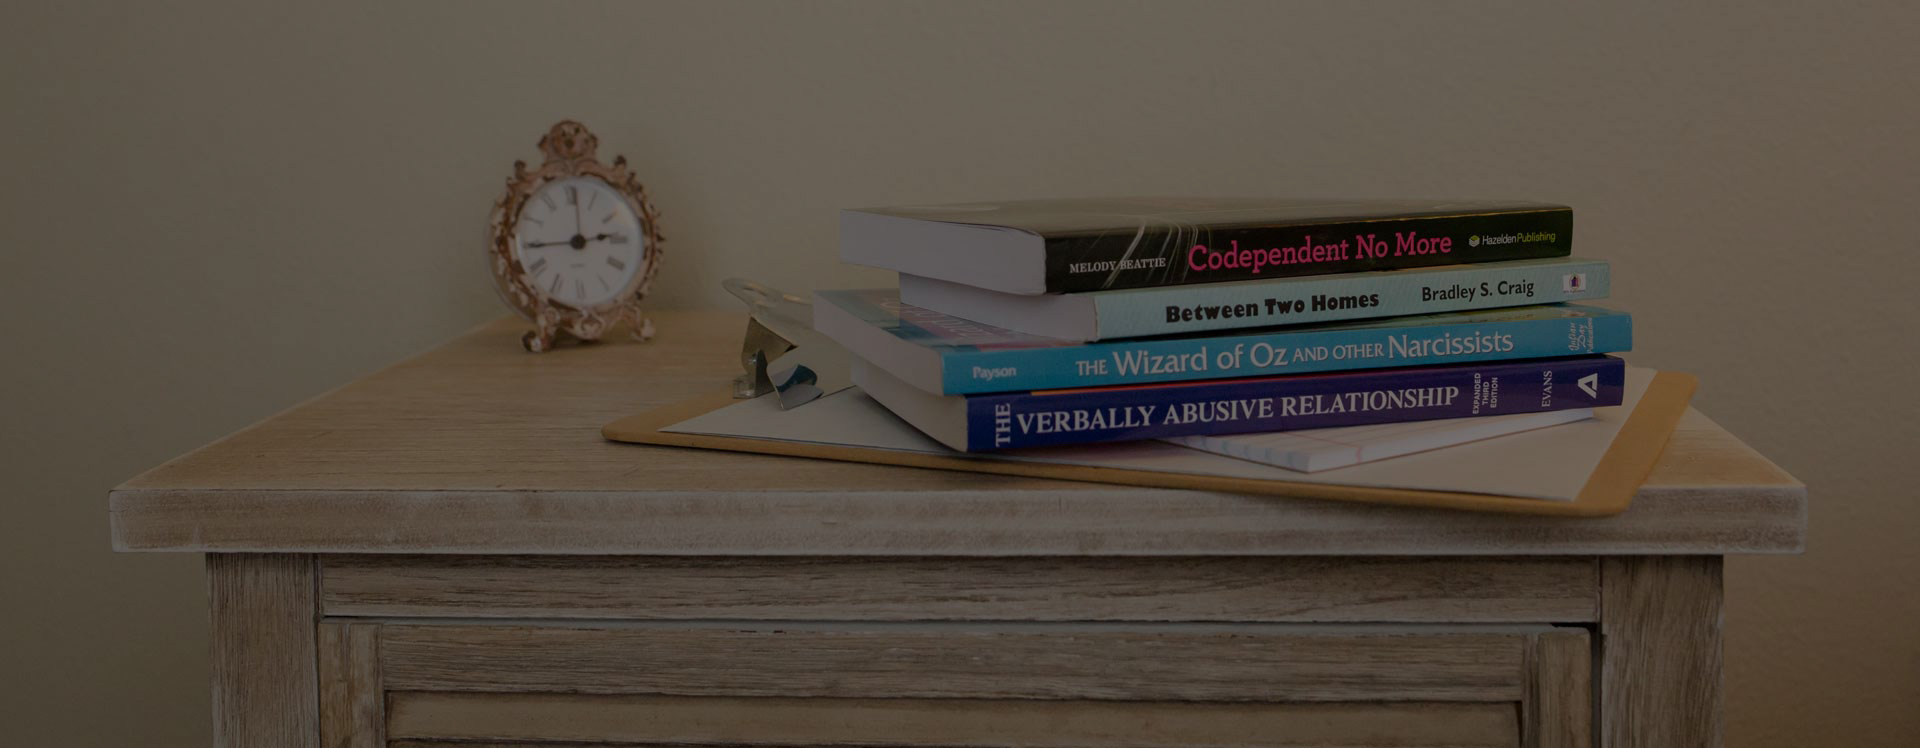 books about counseling on the desk